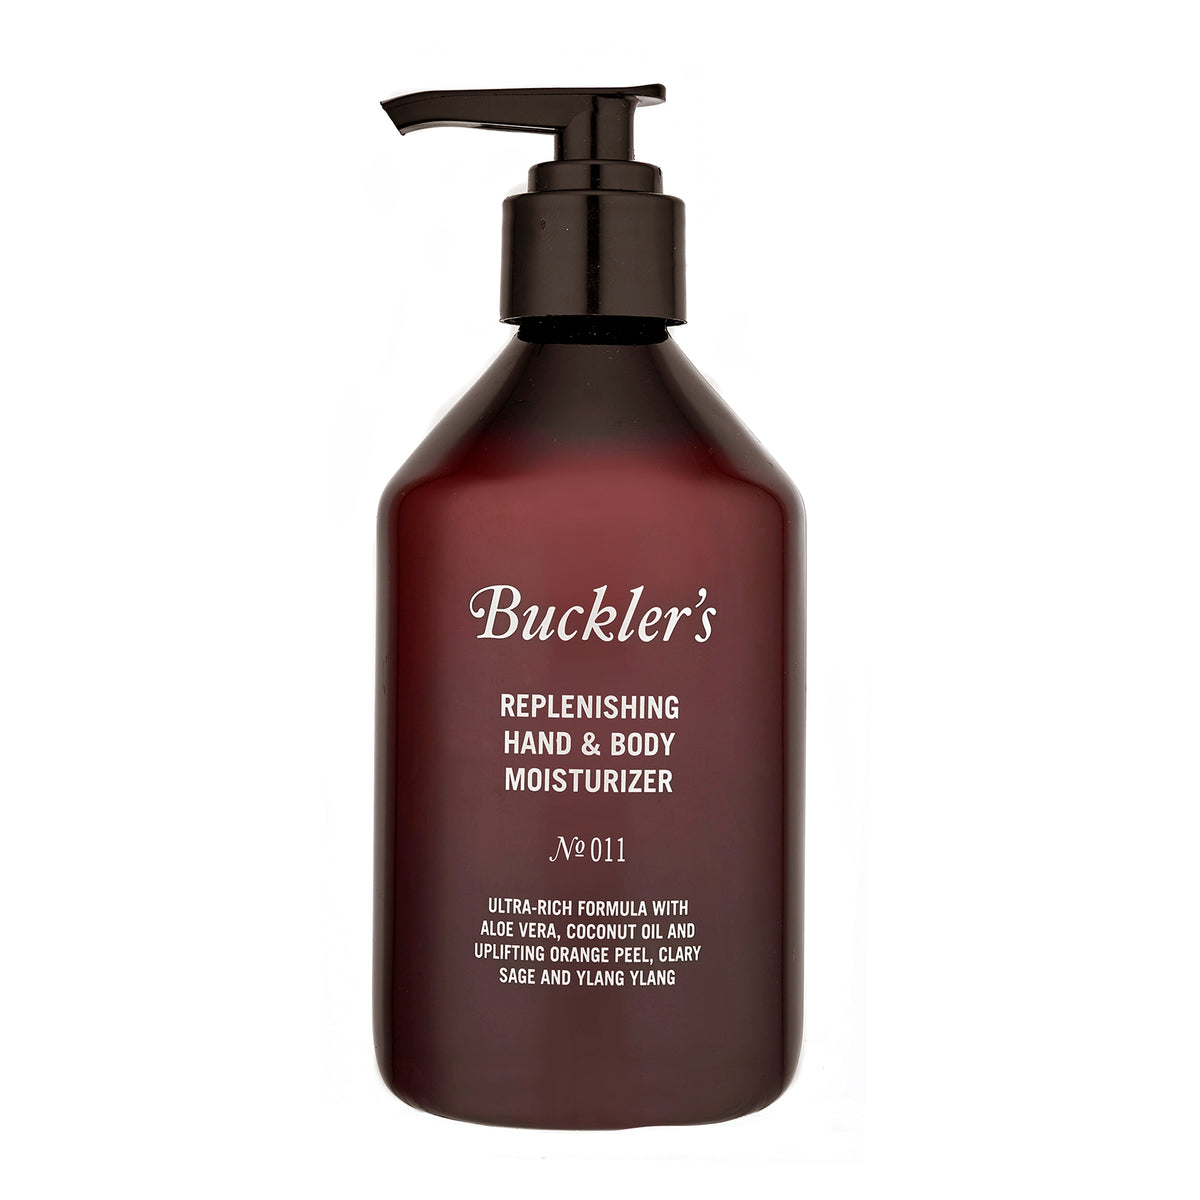 Buckler's Replenishing Hand & Body Moisturizer